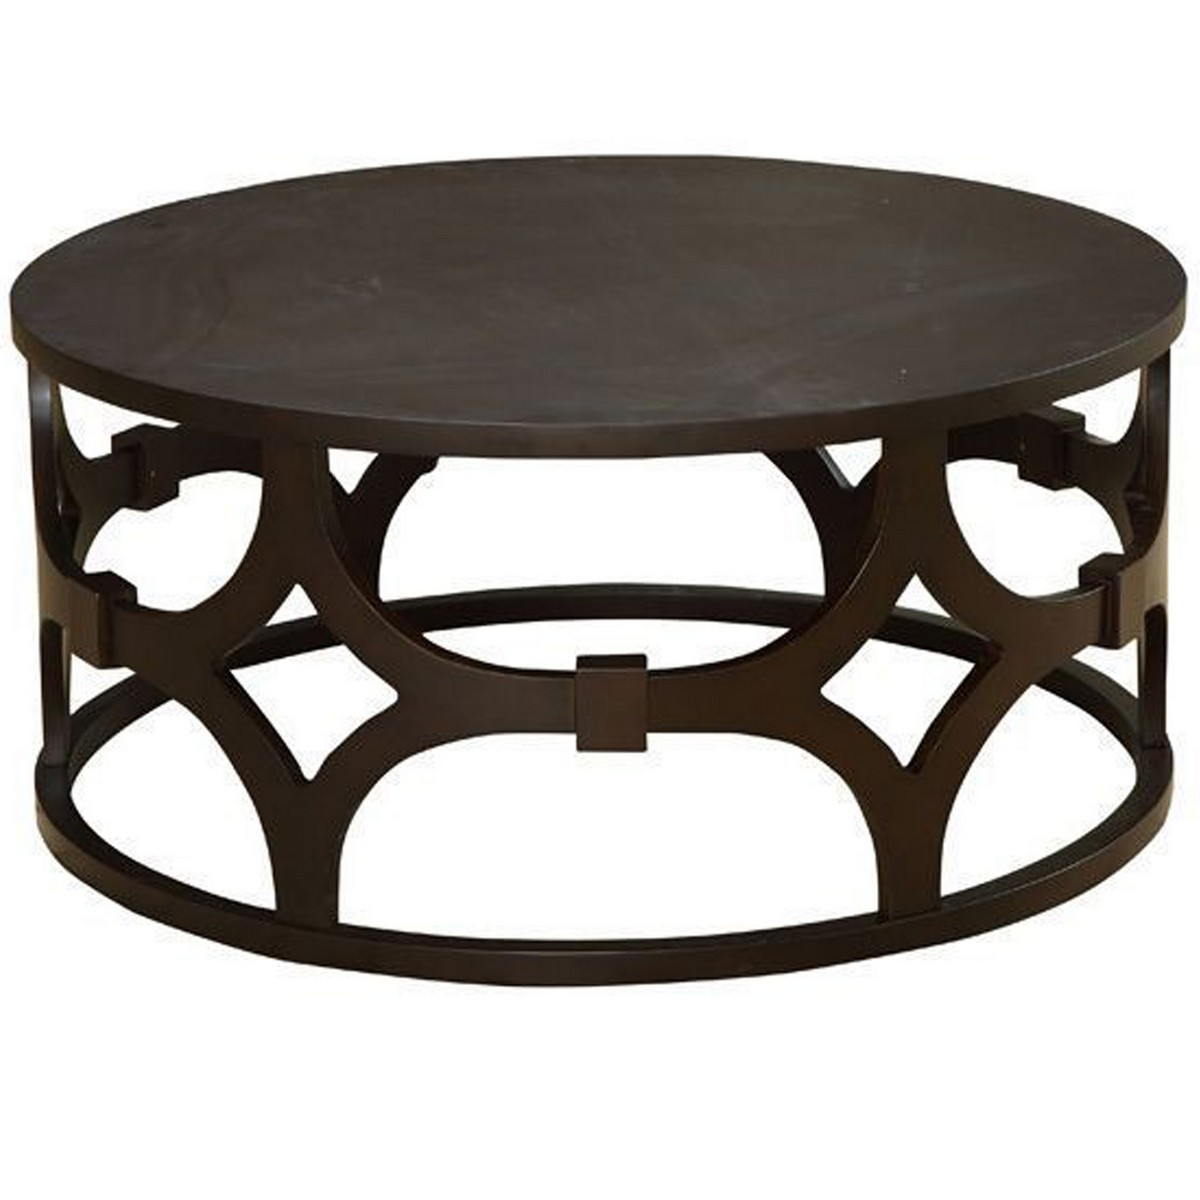 Armen Living Tuxedo Round Coffee Table